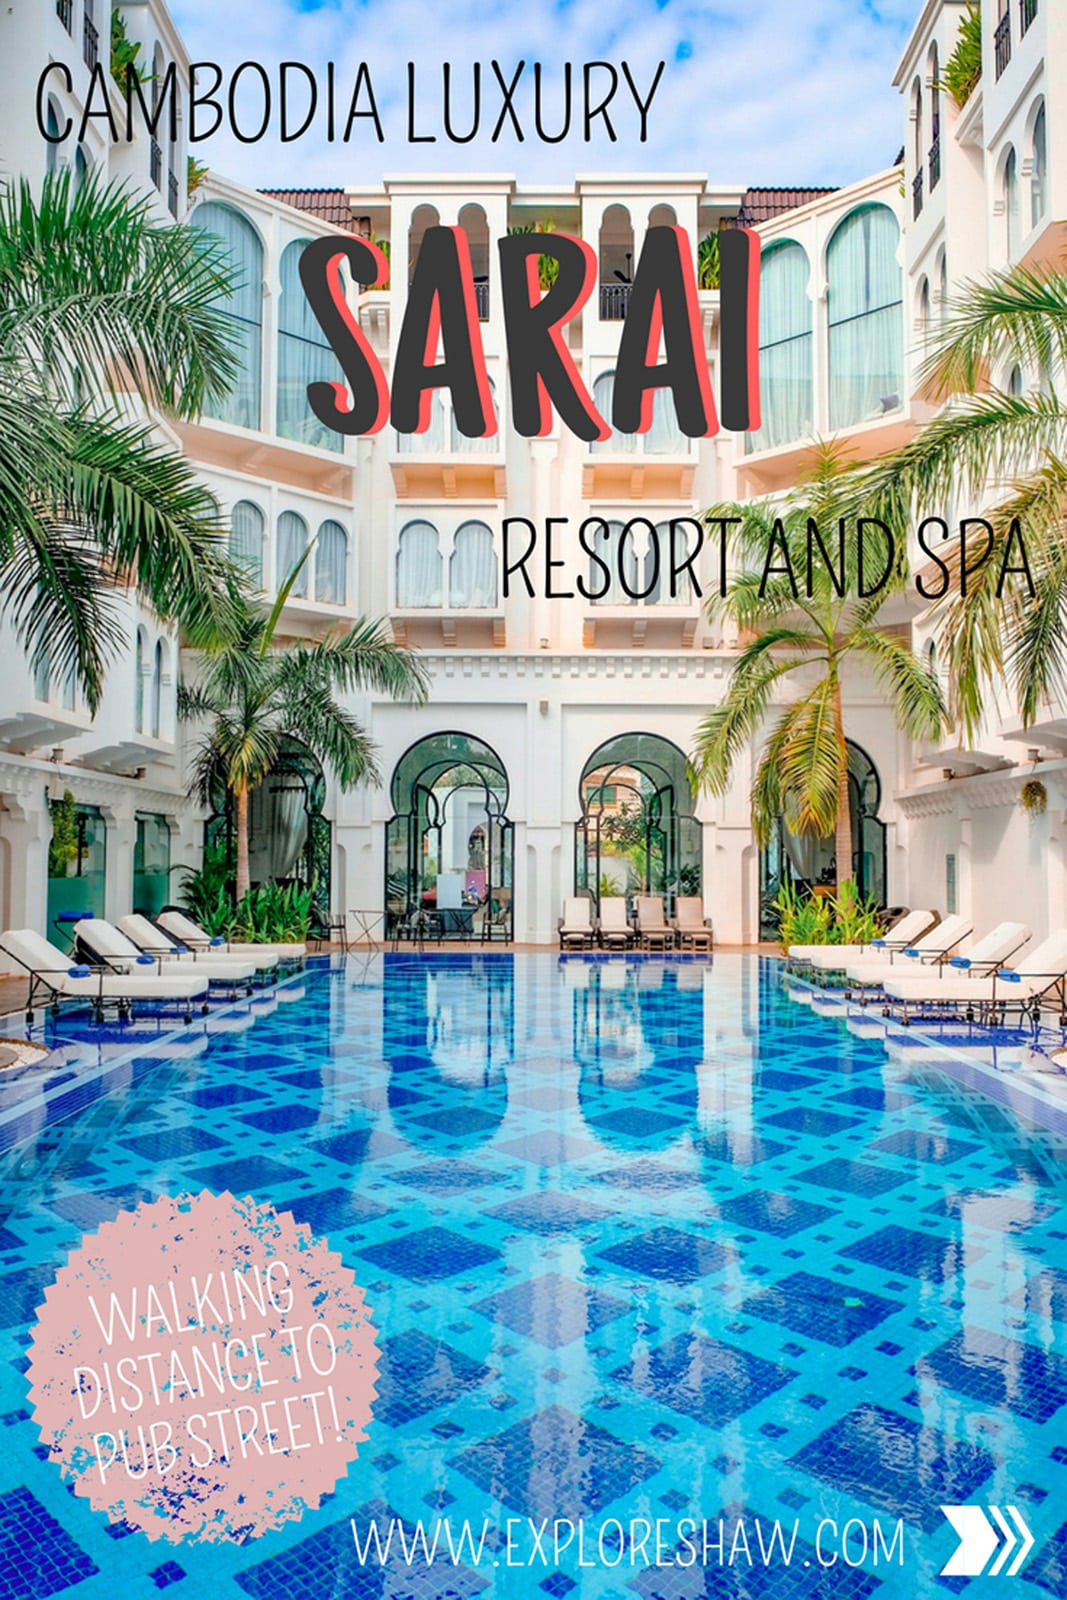 Sarai Resort is in a great location - within walking distance of Pub Street and the Angkor Night Market (both less than 1km or 10 minutes walk away), with several restaurants and cheap bars close by if you don't want to go all the way out to Pub Street. #Cambodia #SiemReap